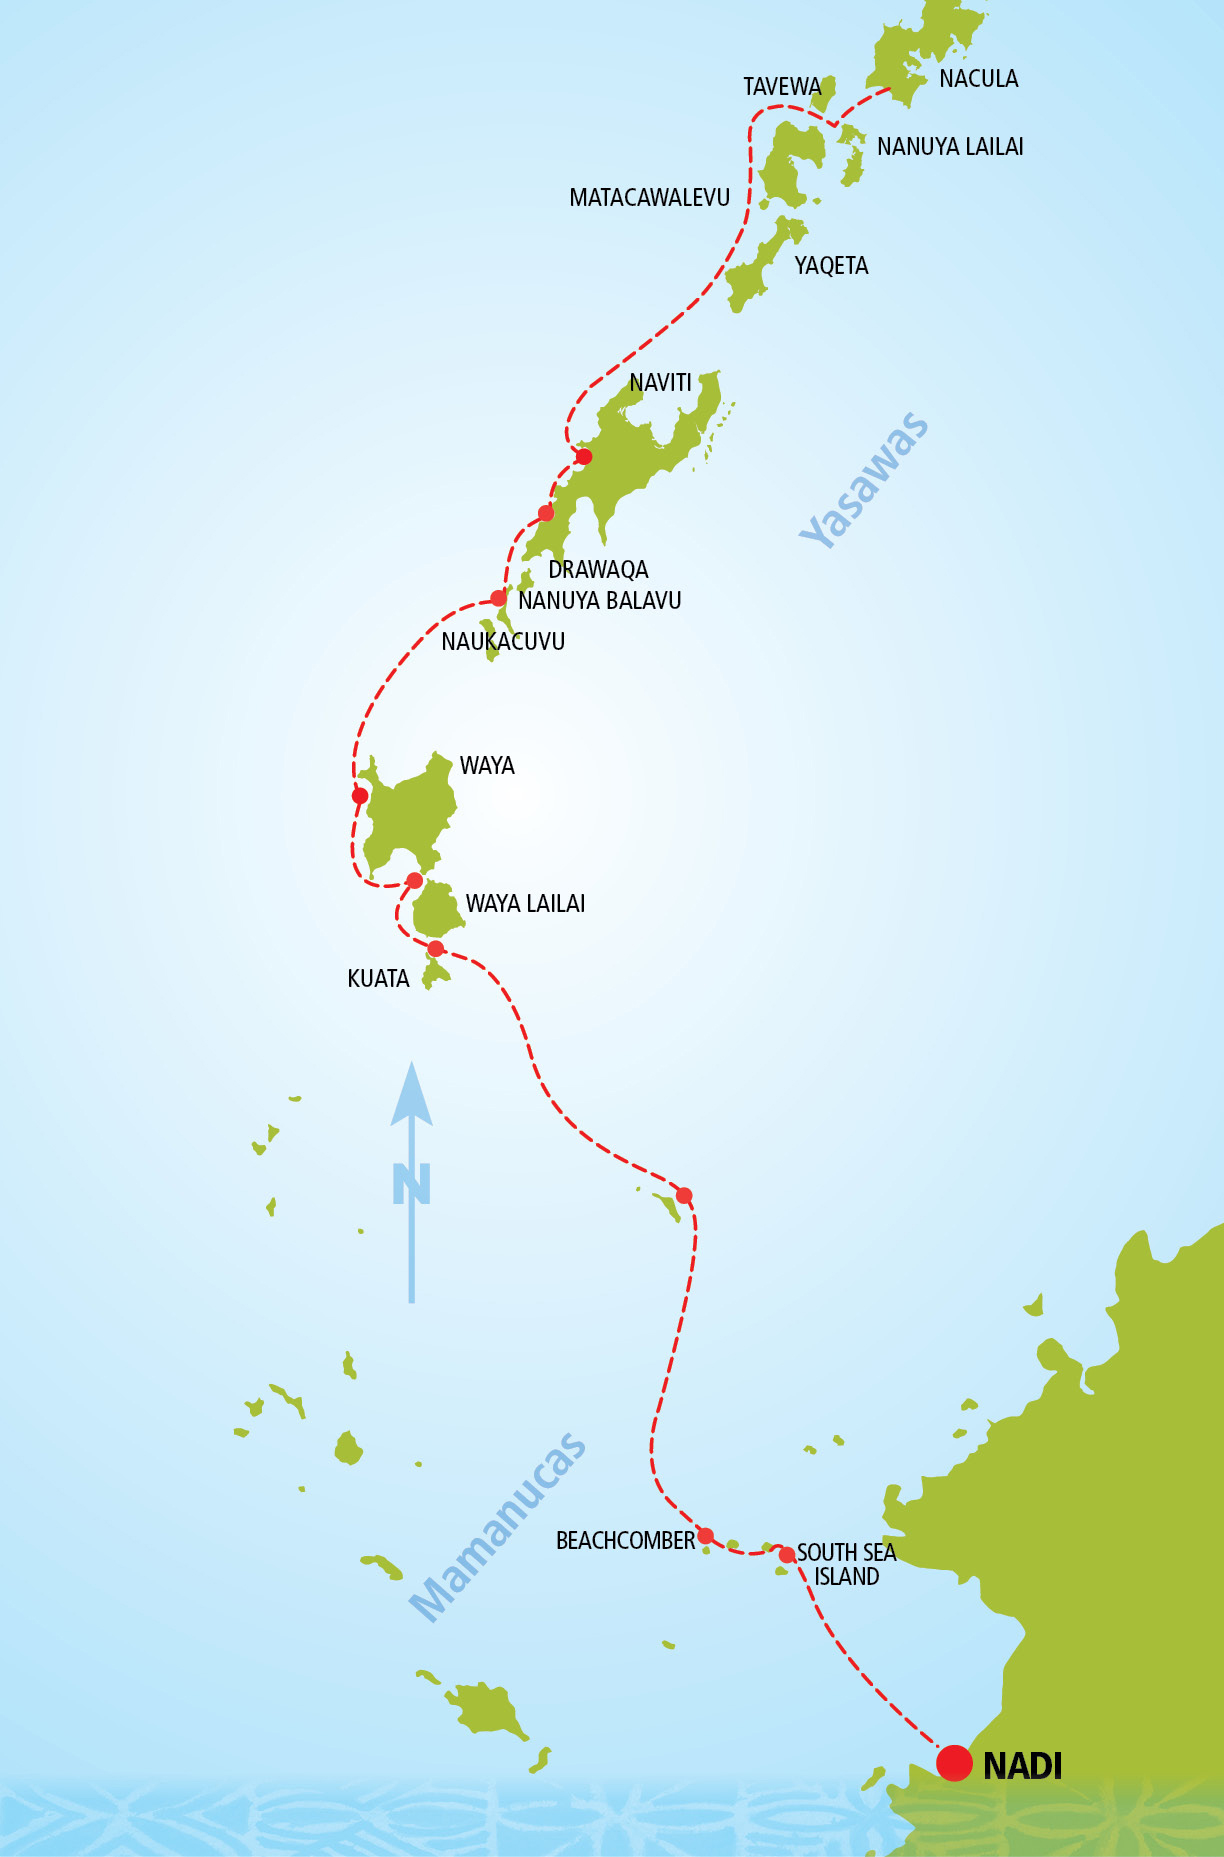 Yasawa Islands Fiji Map Yasawa Island Explorer Fiji Day Cruise | South Sea Cruises